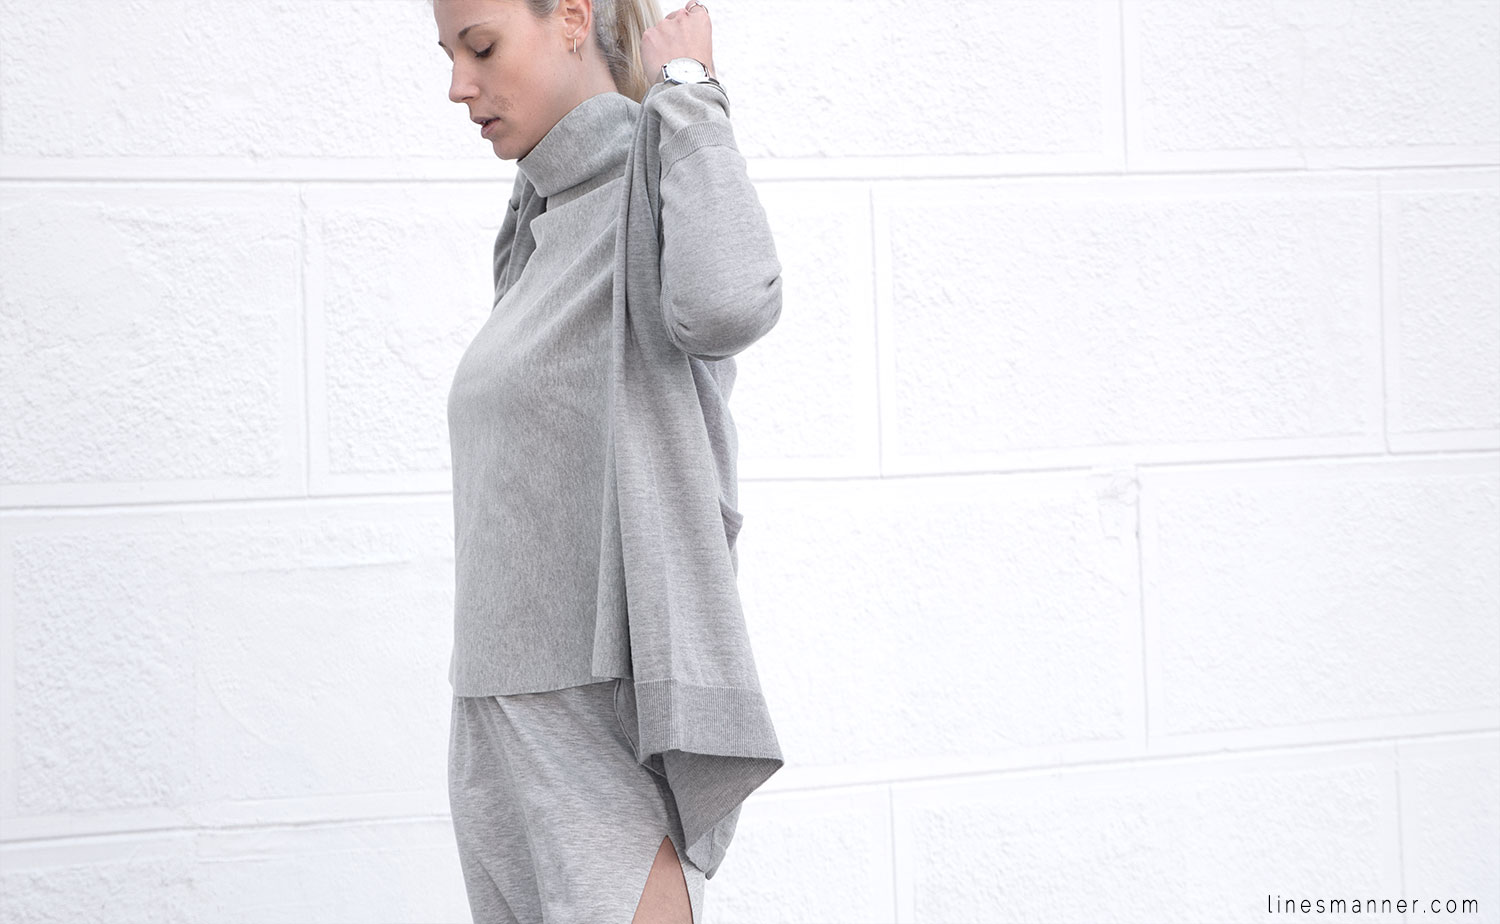 Lines-Manner-Outfit-Grey_on_grey-All_grey-Simplicty-Relaxed-Casual-Textures-Essential-Details-Staples-Minimal-Knit-Cardigan-Coisa-Layering-5